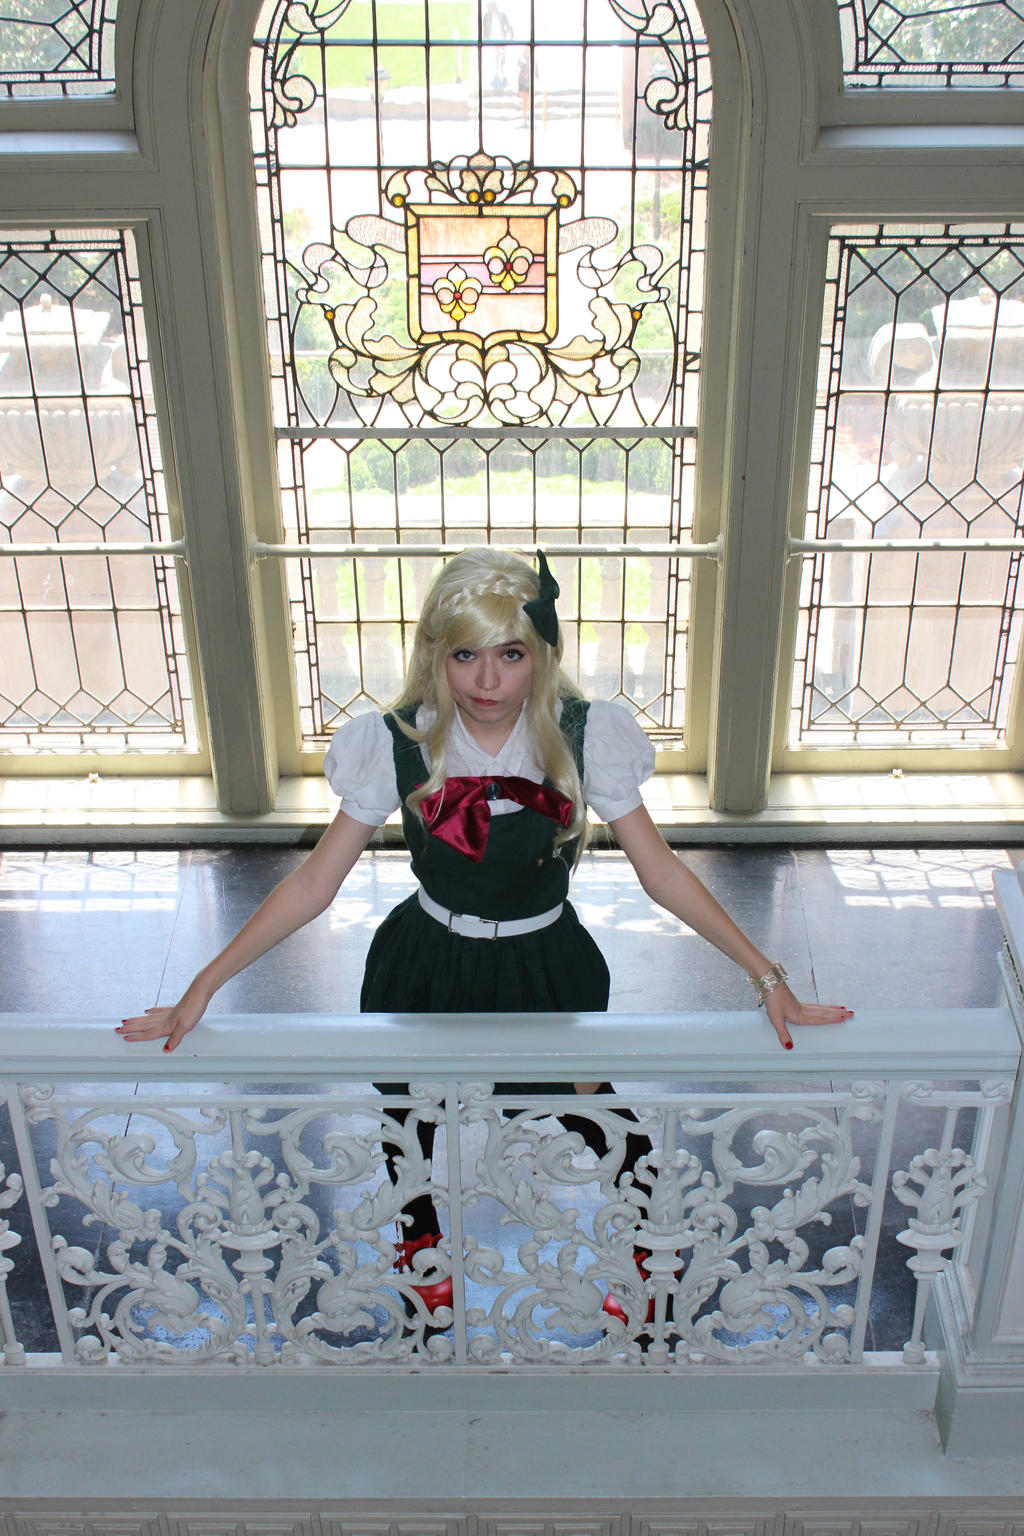 Sonia Nevermind Cosplay by cocoradcat on DeviantArt